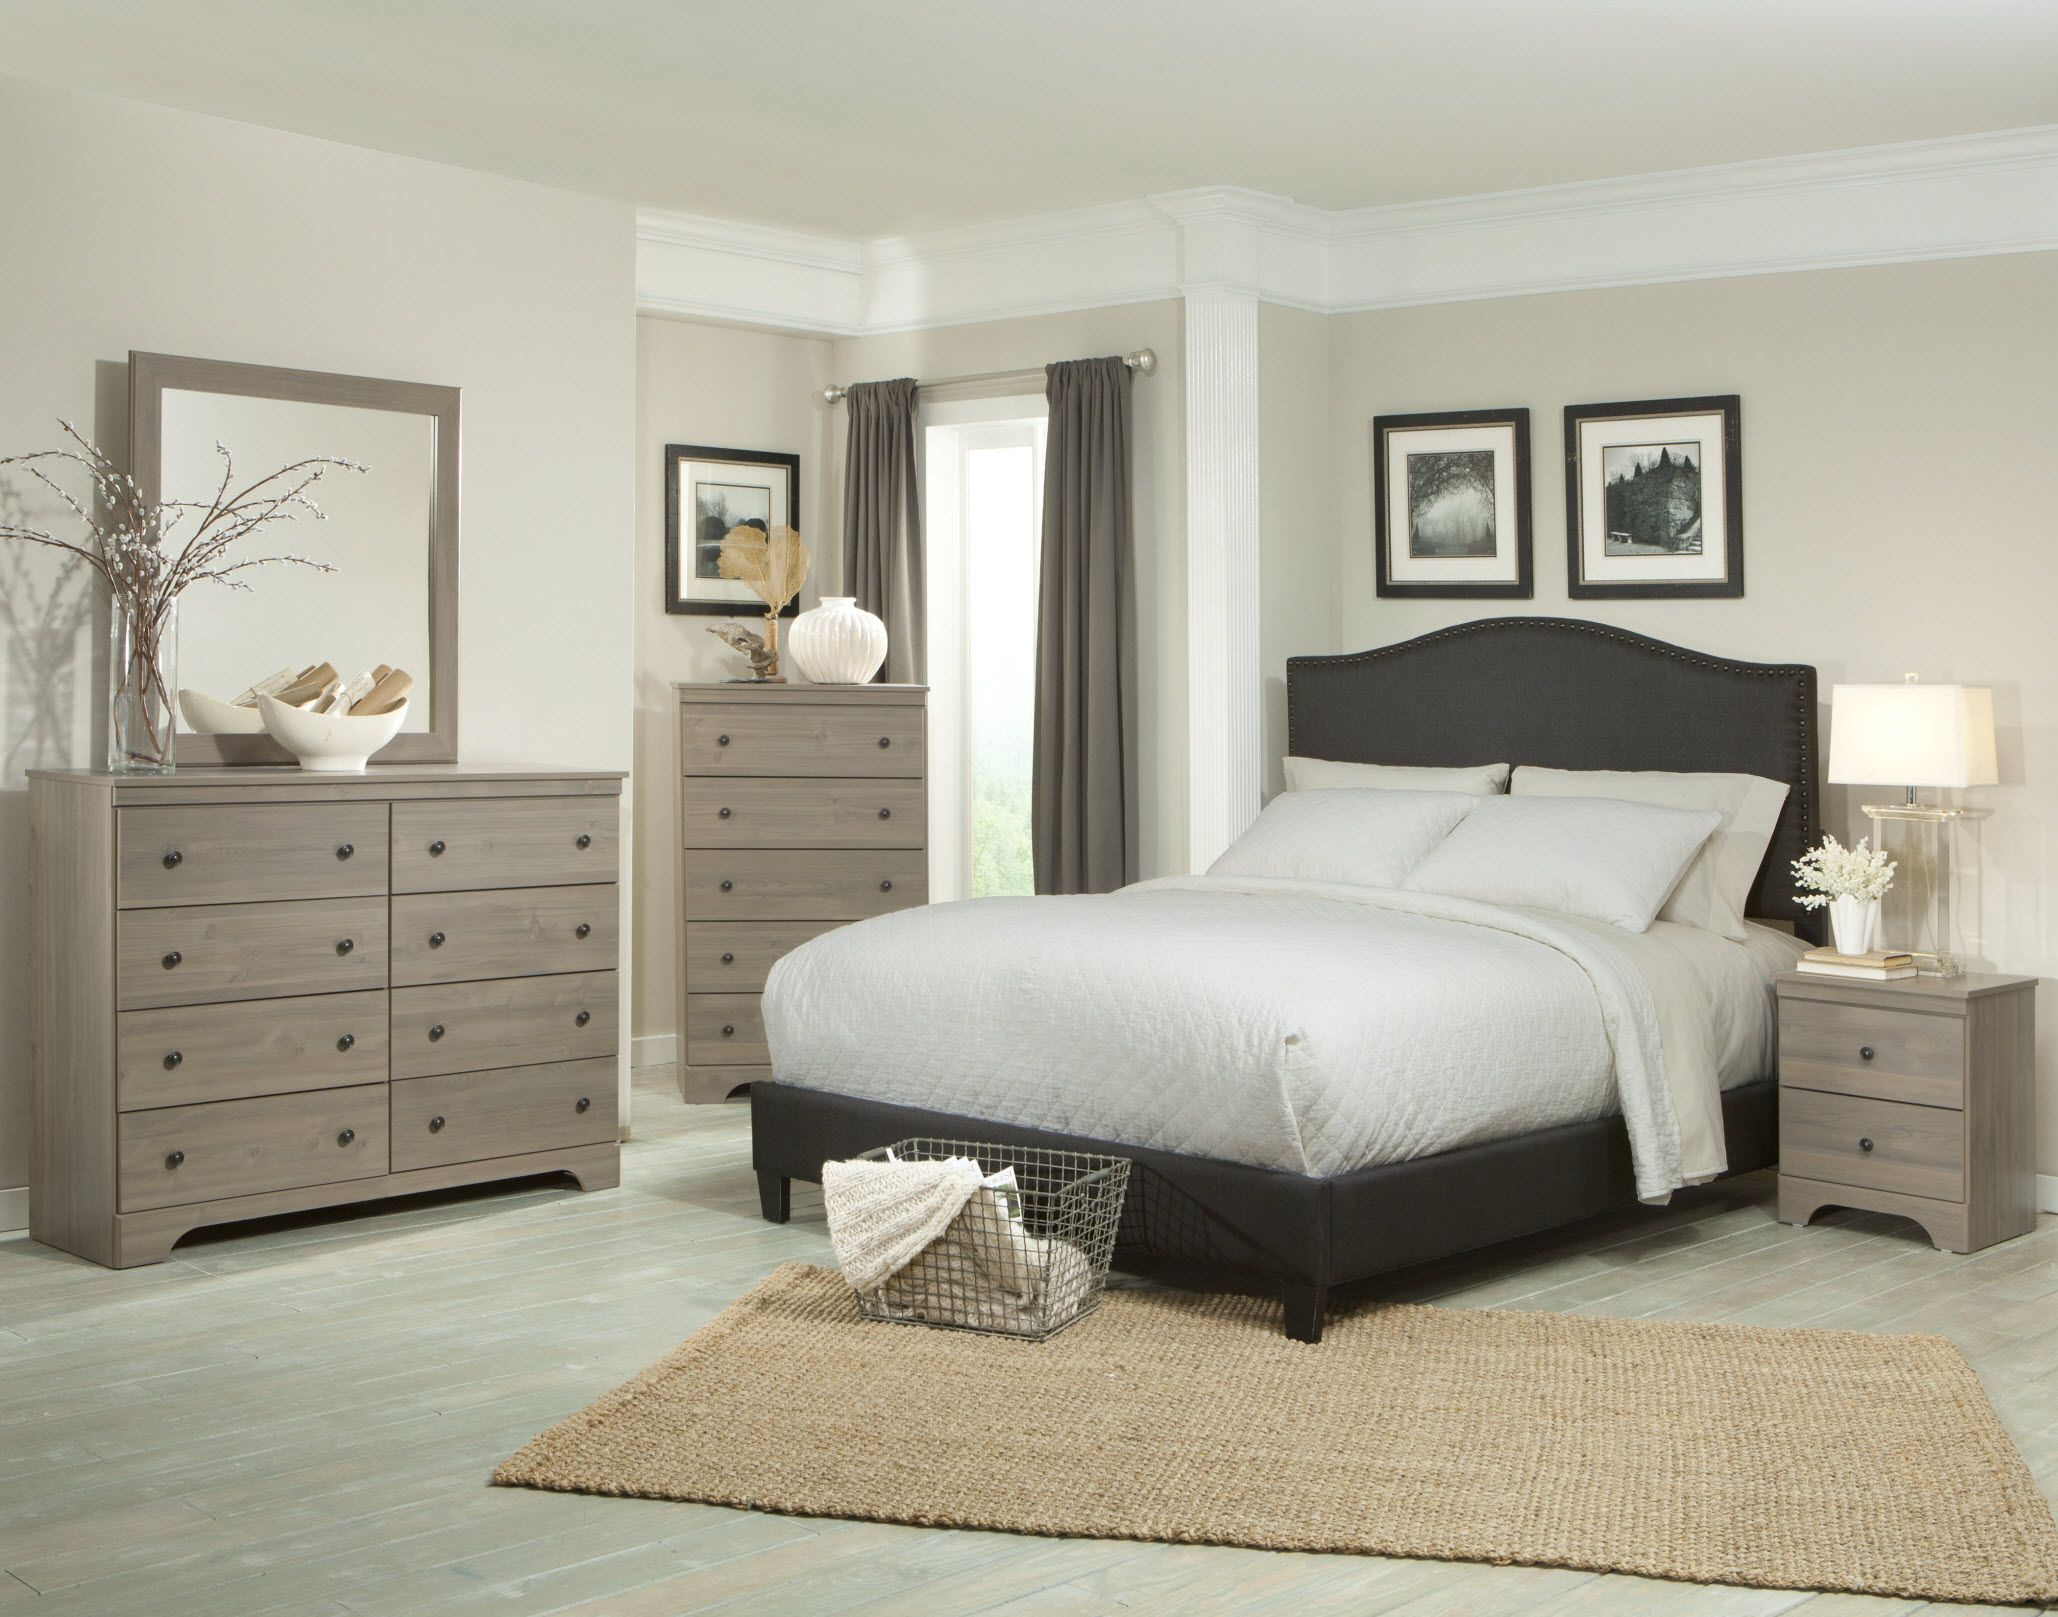 Ornate wooden ikea bedroom transitional furniture sets with queen platform beds as well as Master bedroom with grey furniture